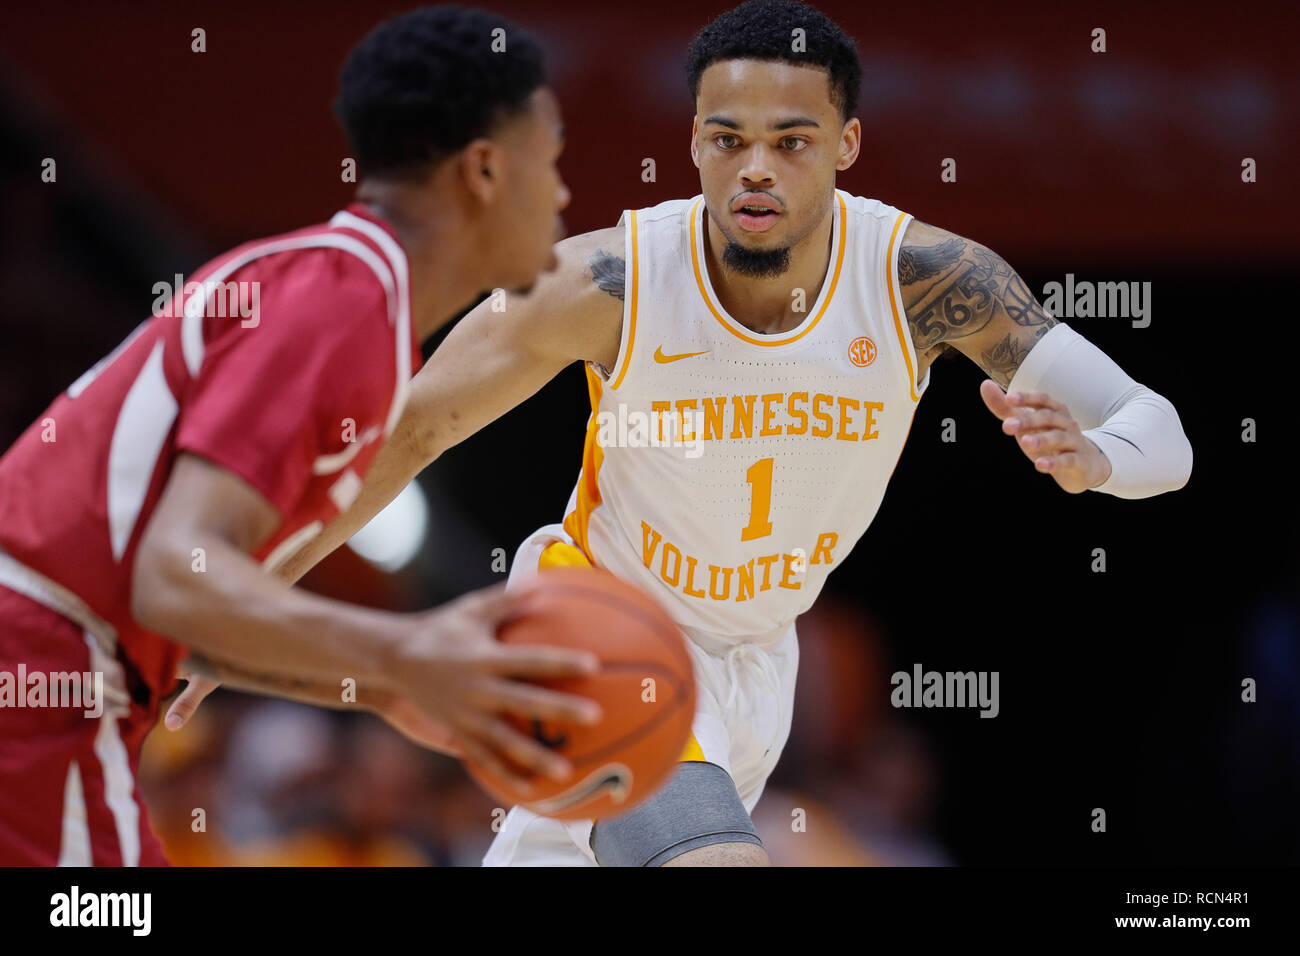 Knoxville, Tennessee, USA  January 15, 2019: Lamonte Turner